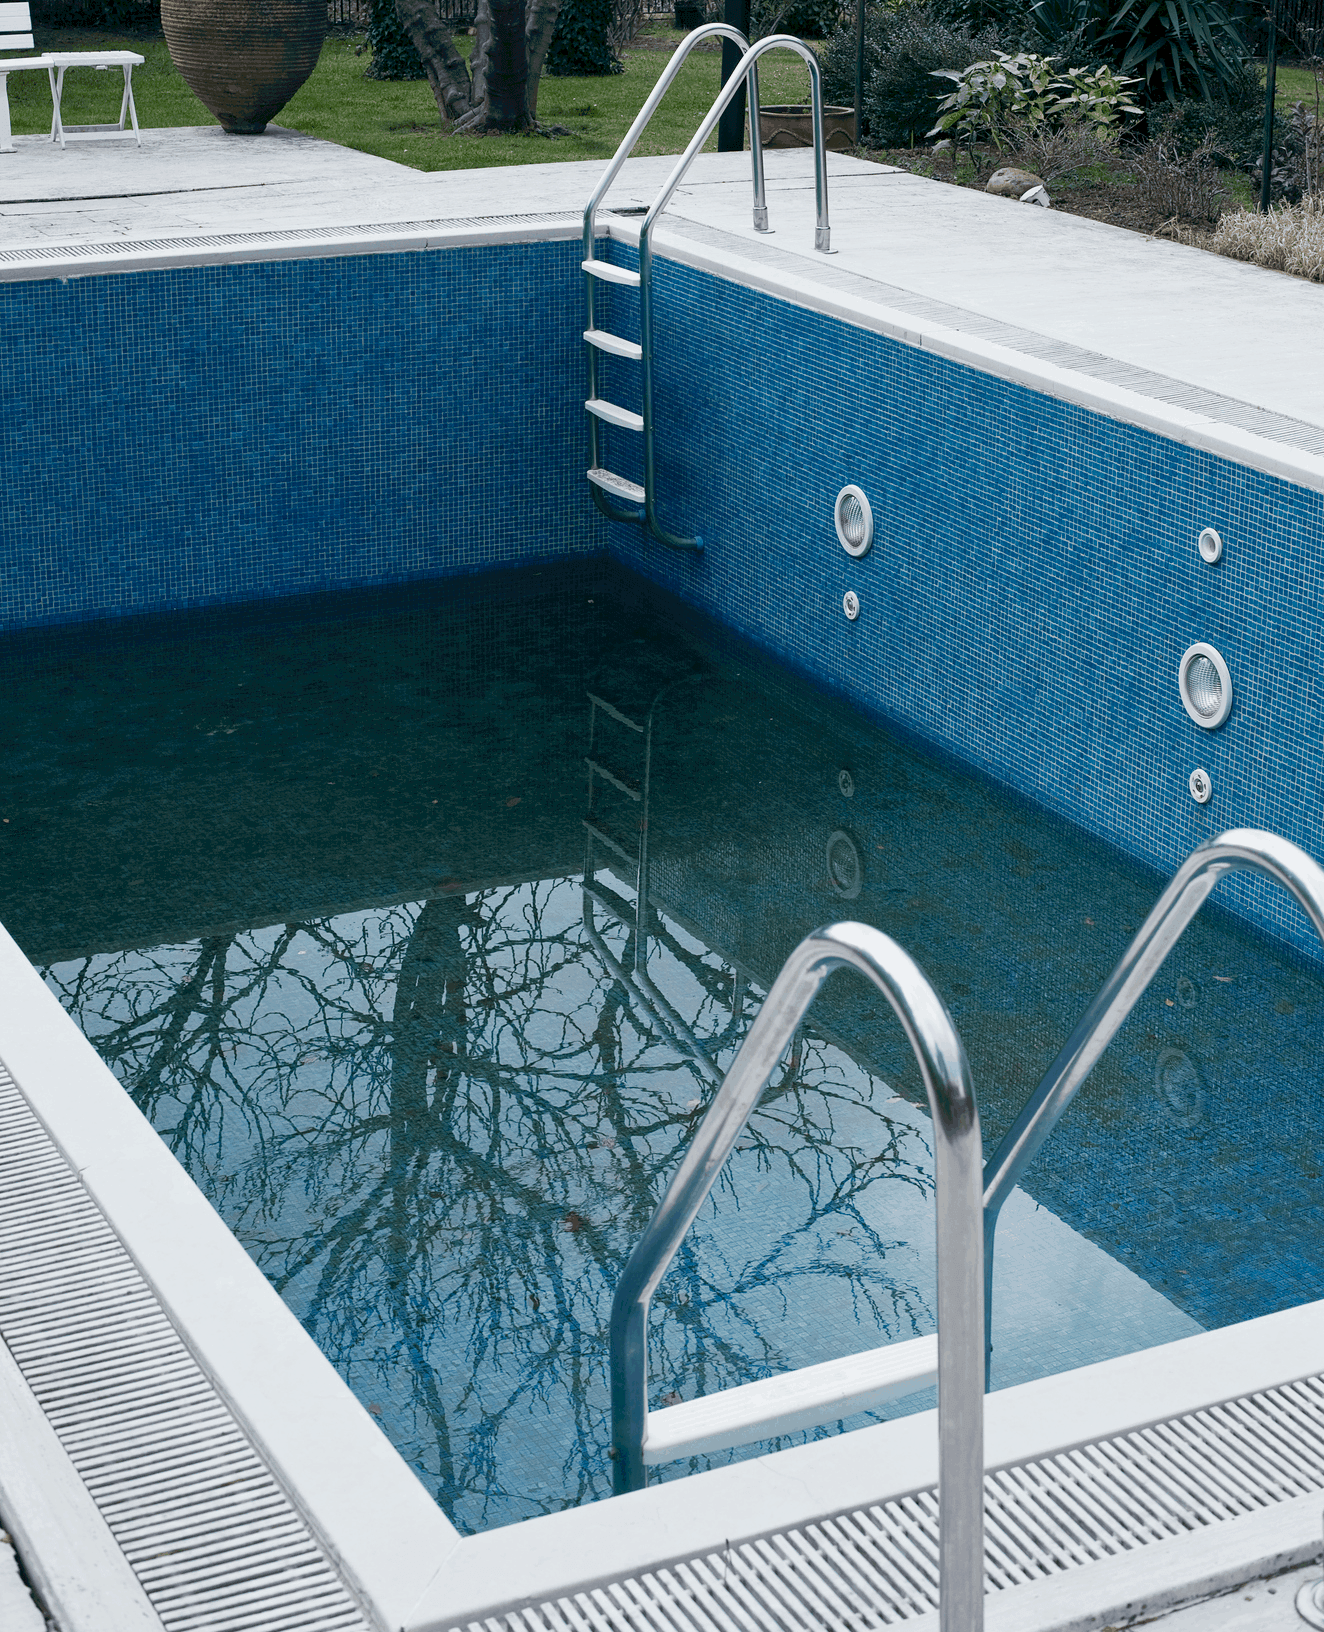 Pool leak detection Mont Albert